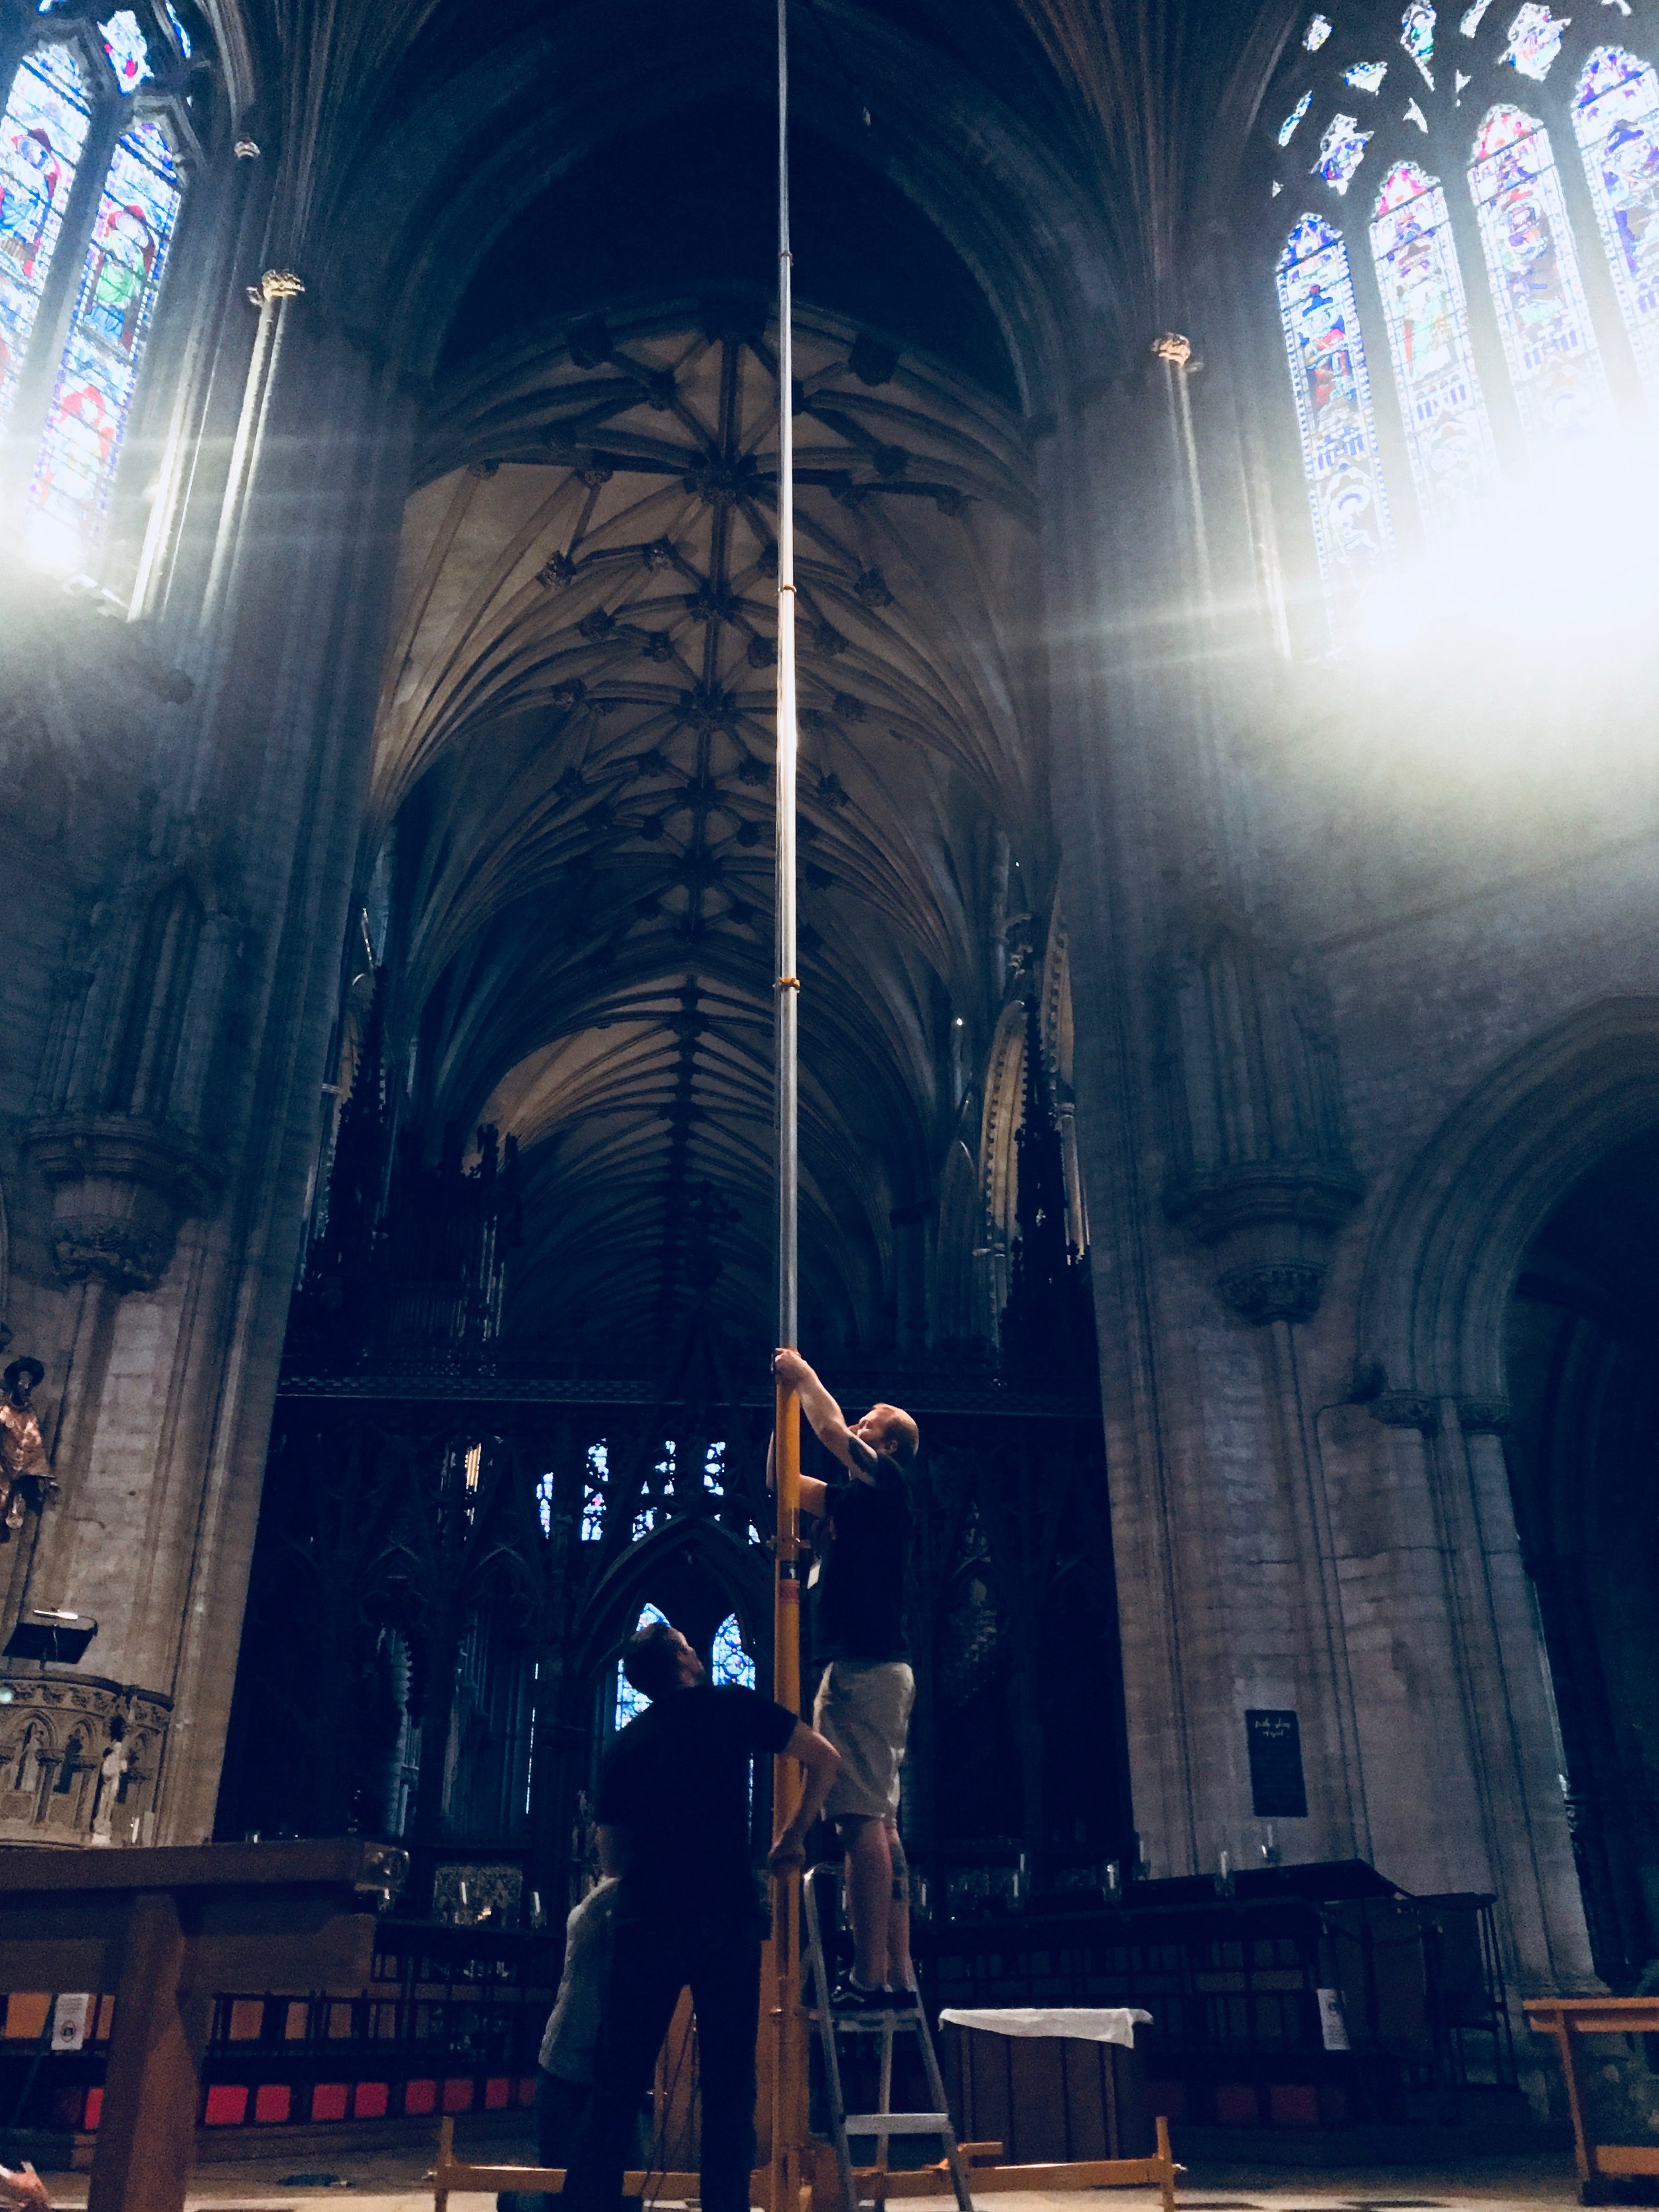 Abbey Road engineers Lewis Jones and Matt Jones erect a 50 foot mast under the tower of Ely Cathedral - the microphones placed at the top will help to capture the cavernous acoustic of this ancient building